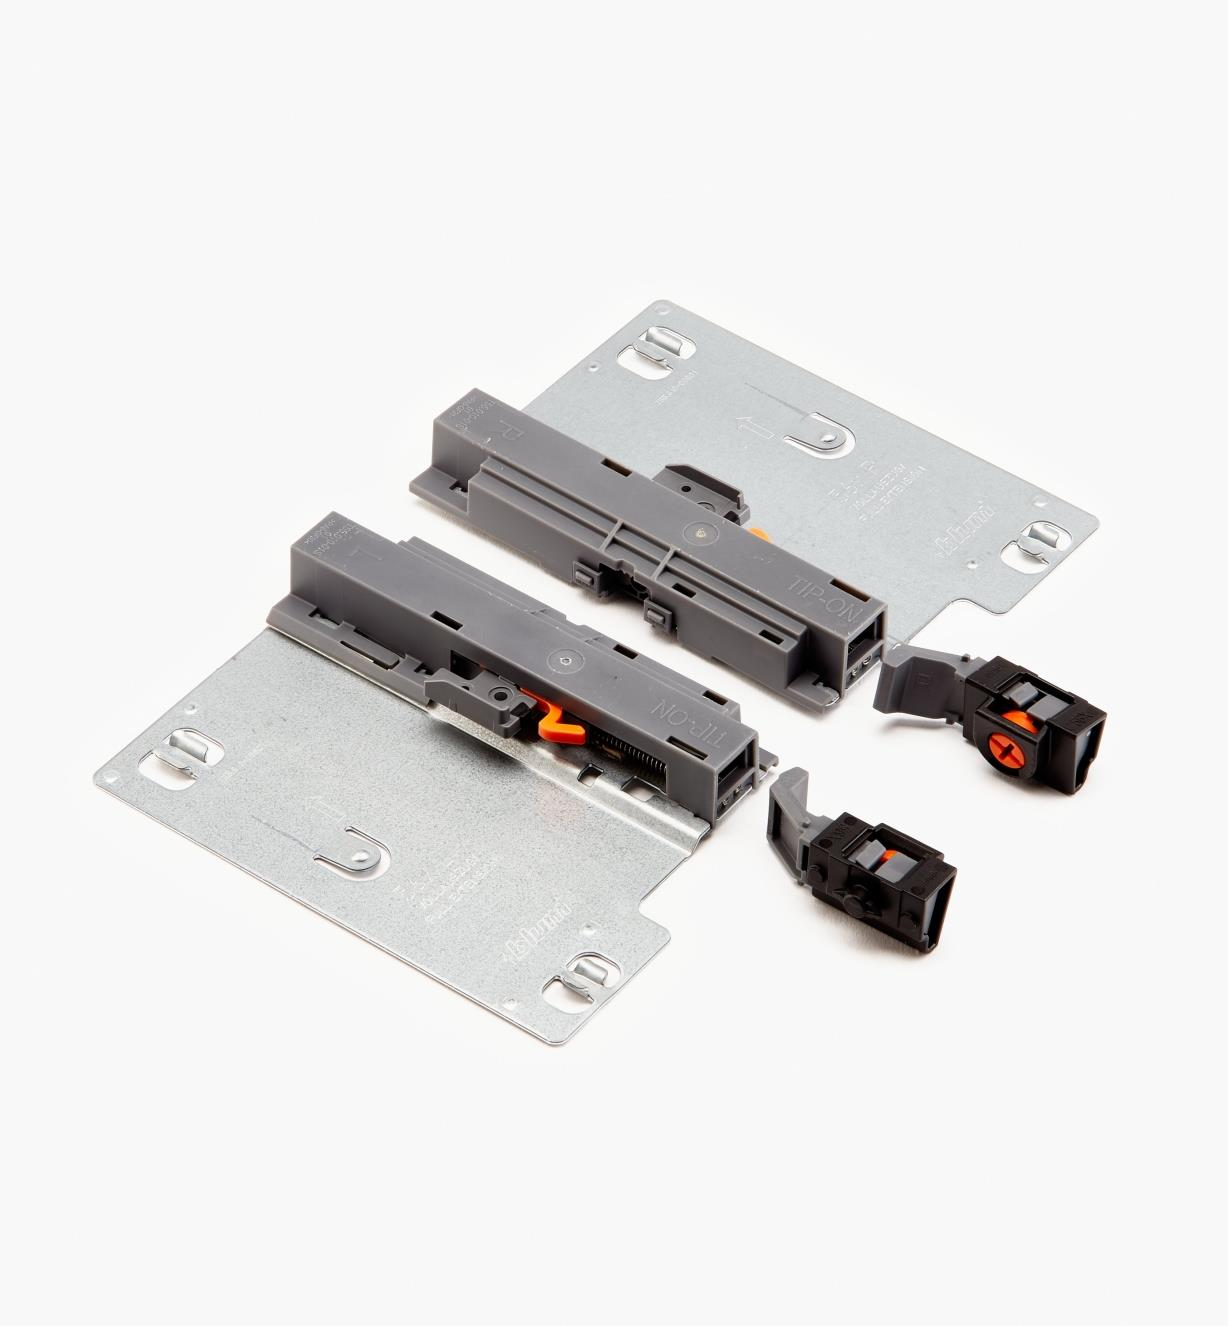 02K6190 - L&R Blum Tip-On Mechanisms, pr.